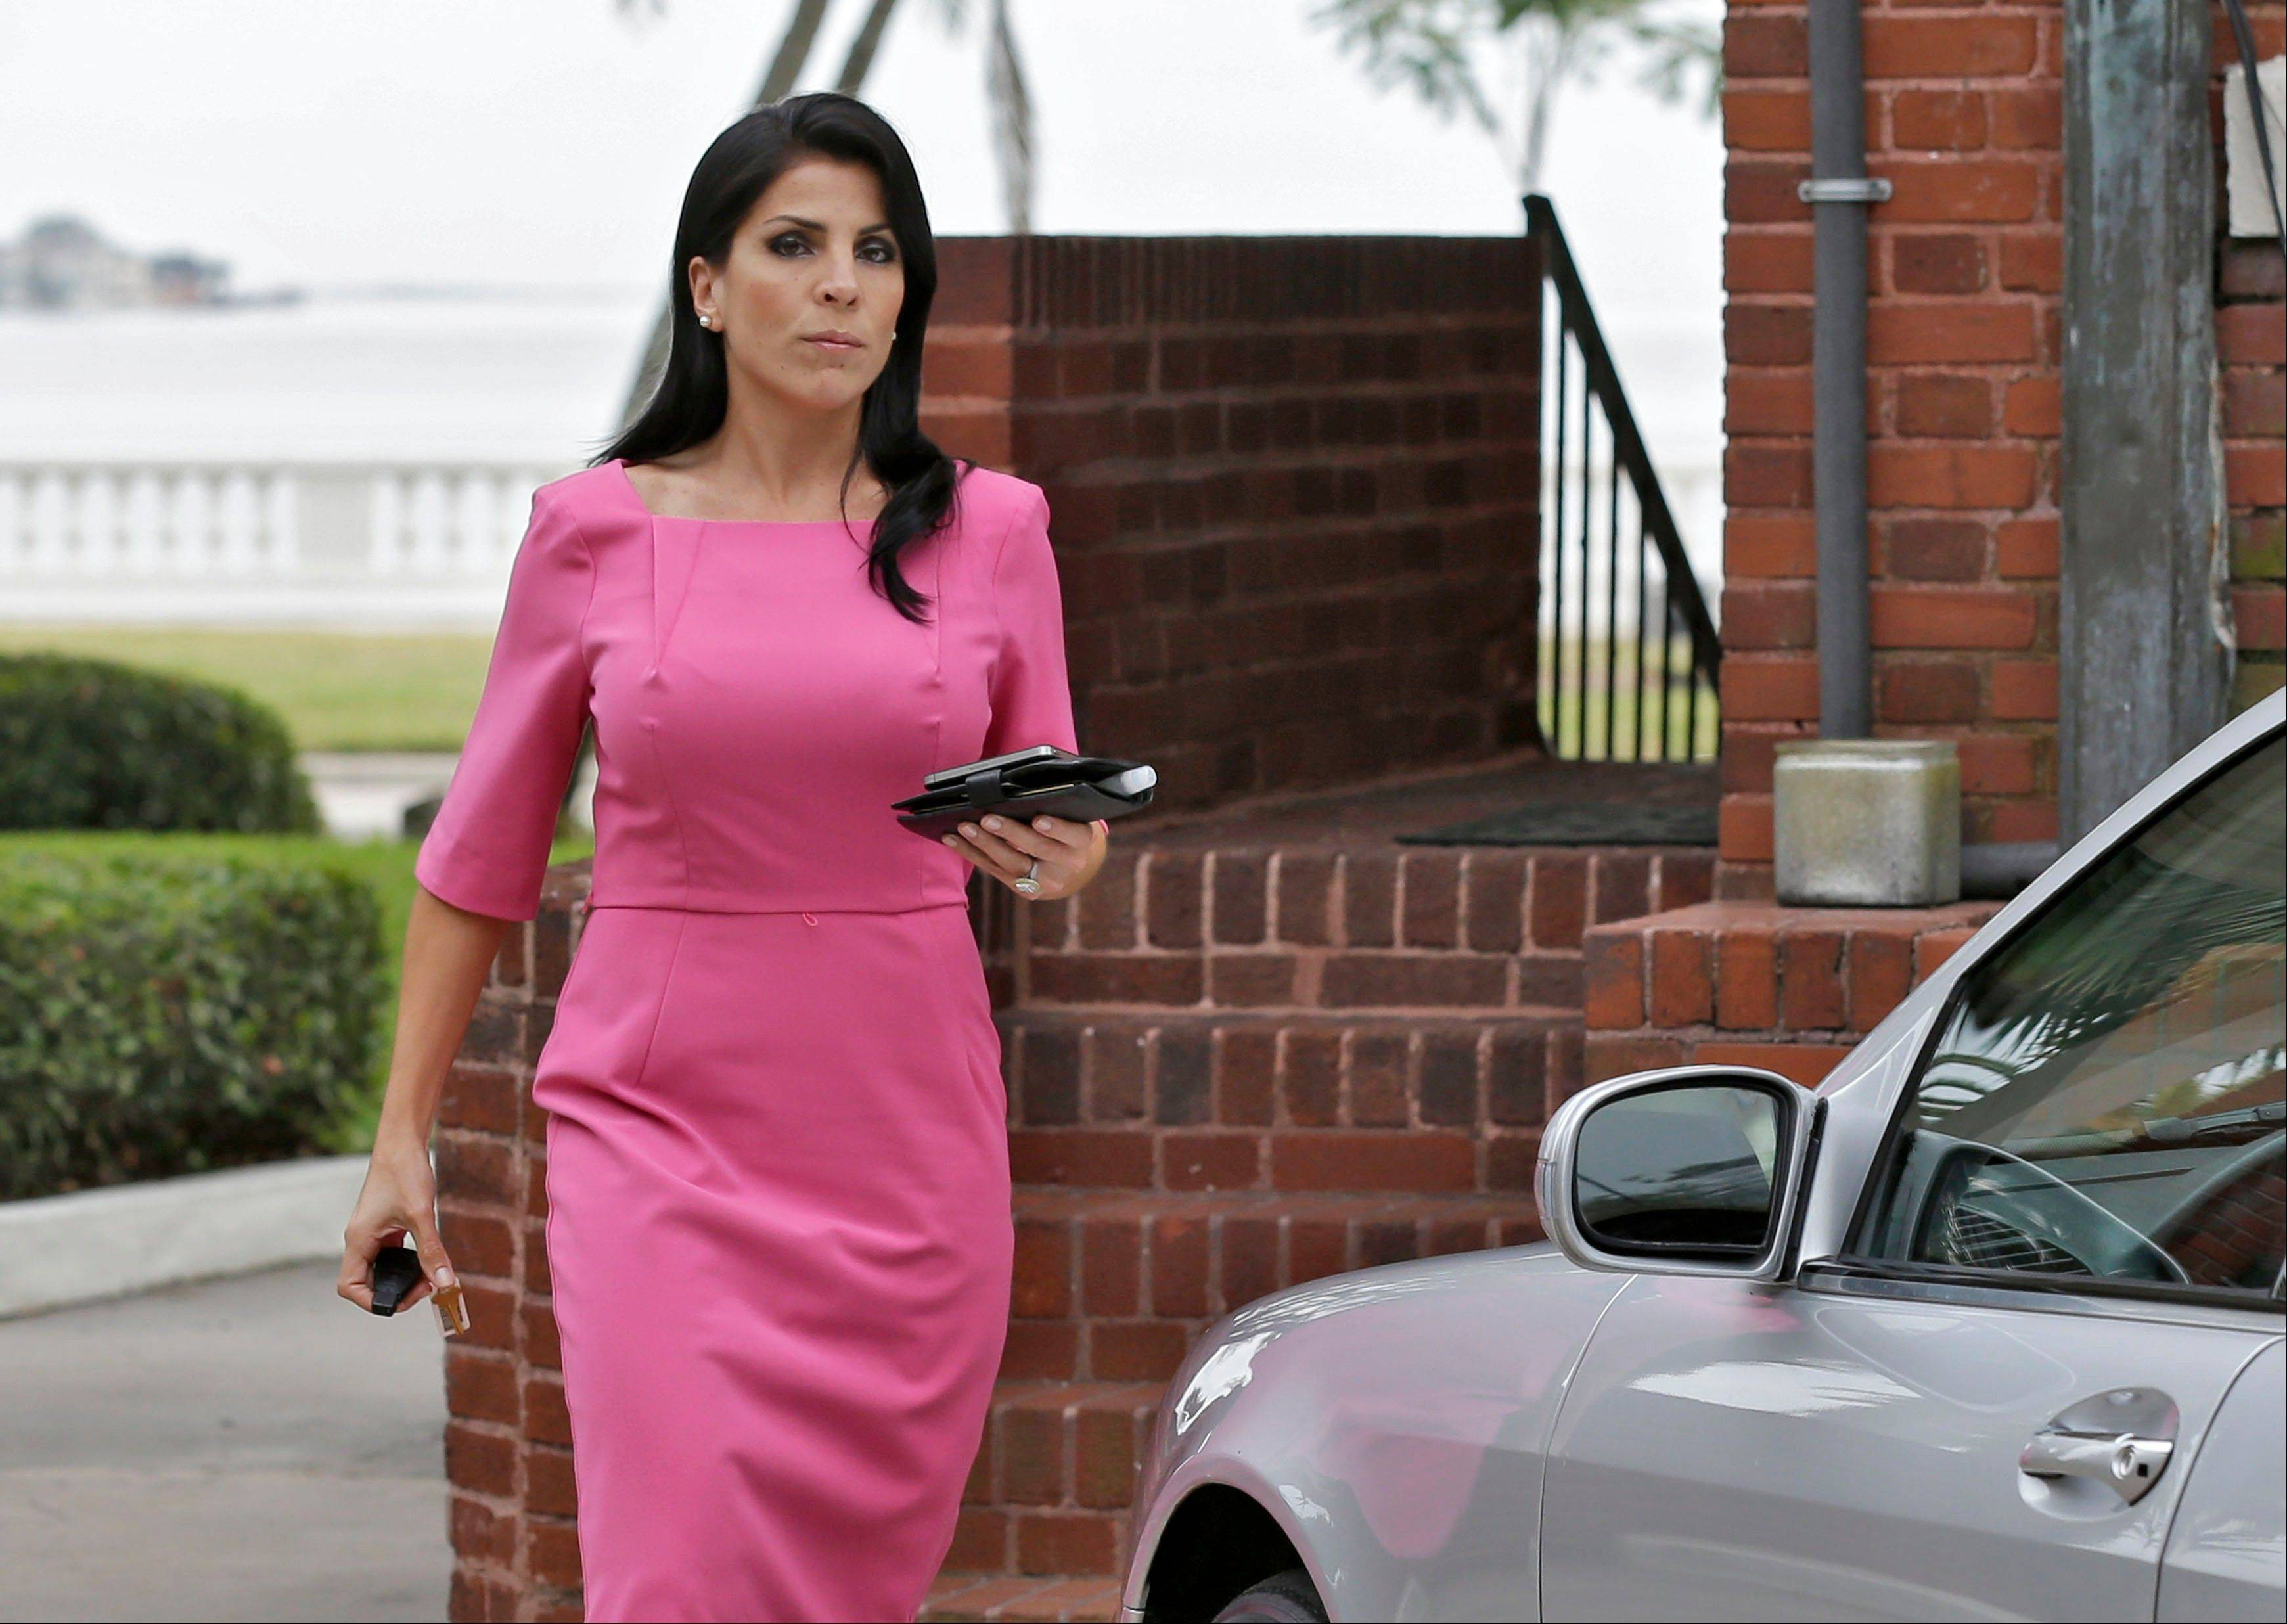 Jill Kelley leaves her home Tuesday, Nov 13, 2012 in Tampa, Fla. Kelley is identified as the woman who allegedly received harassing emails from Gen. David Petraeus� paramour, Paula Broadwell. She serves as an unpaid social liaison to MacDill Air Force Base in Tampa, where the military�s Central Command and Special Operations Command are located.